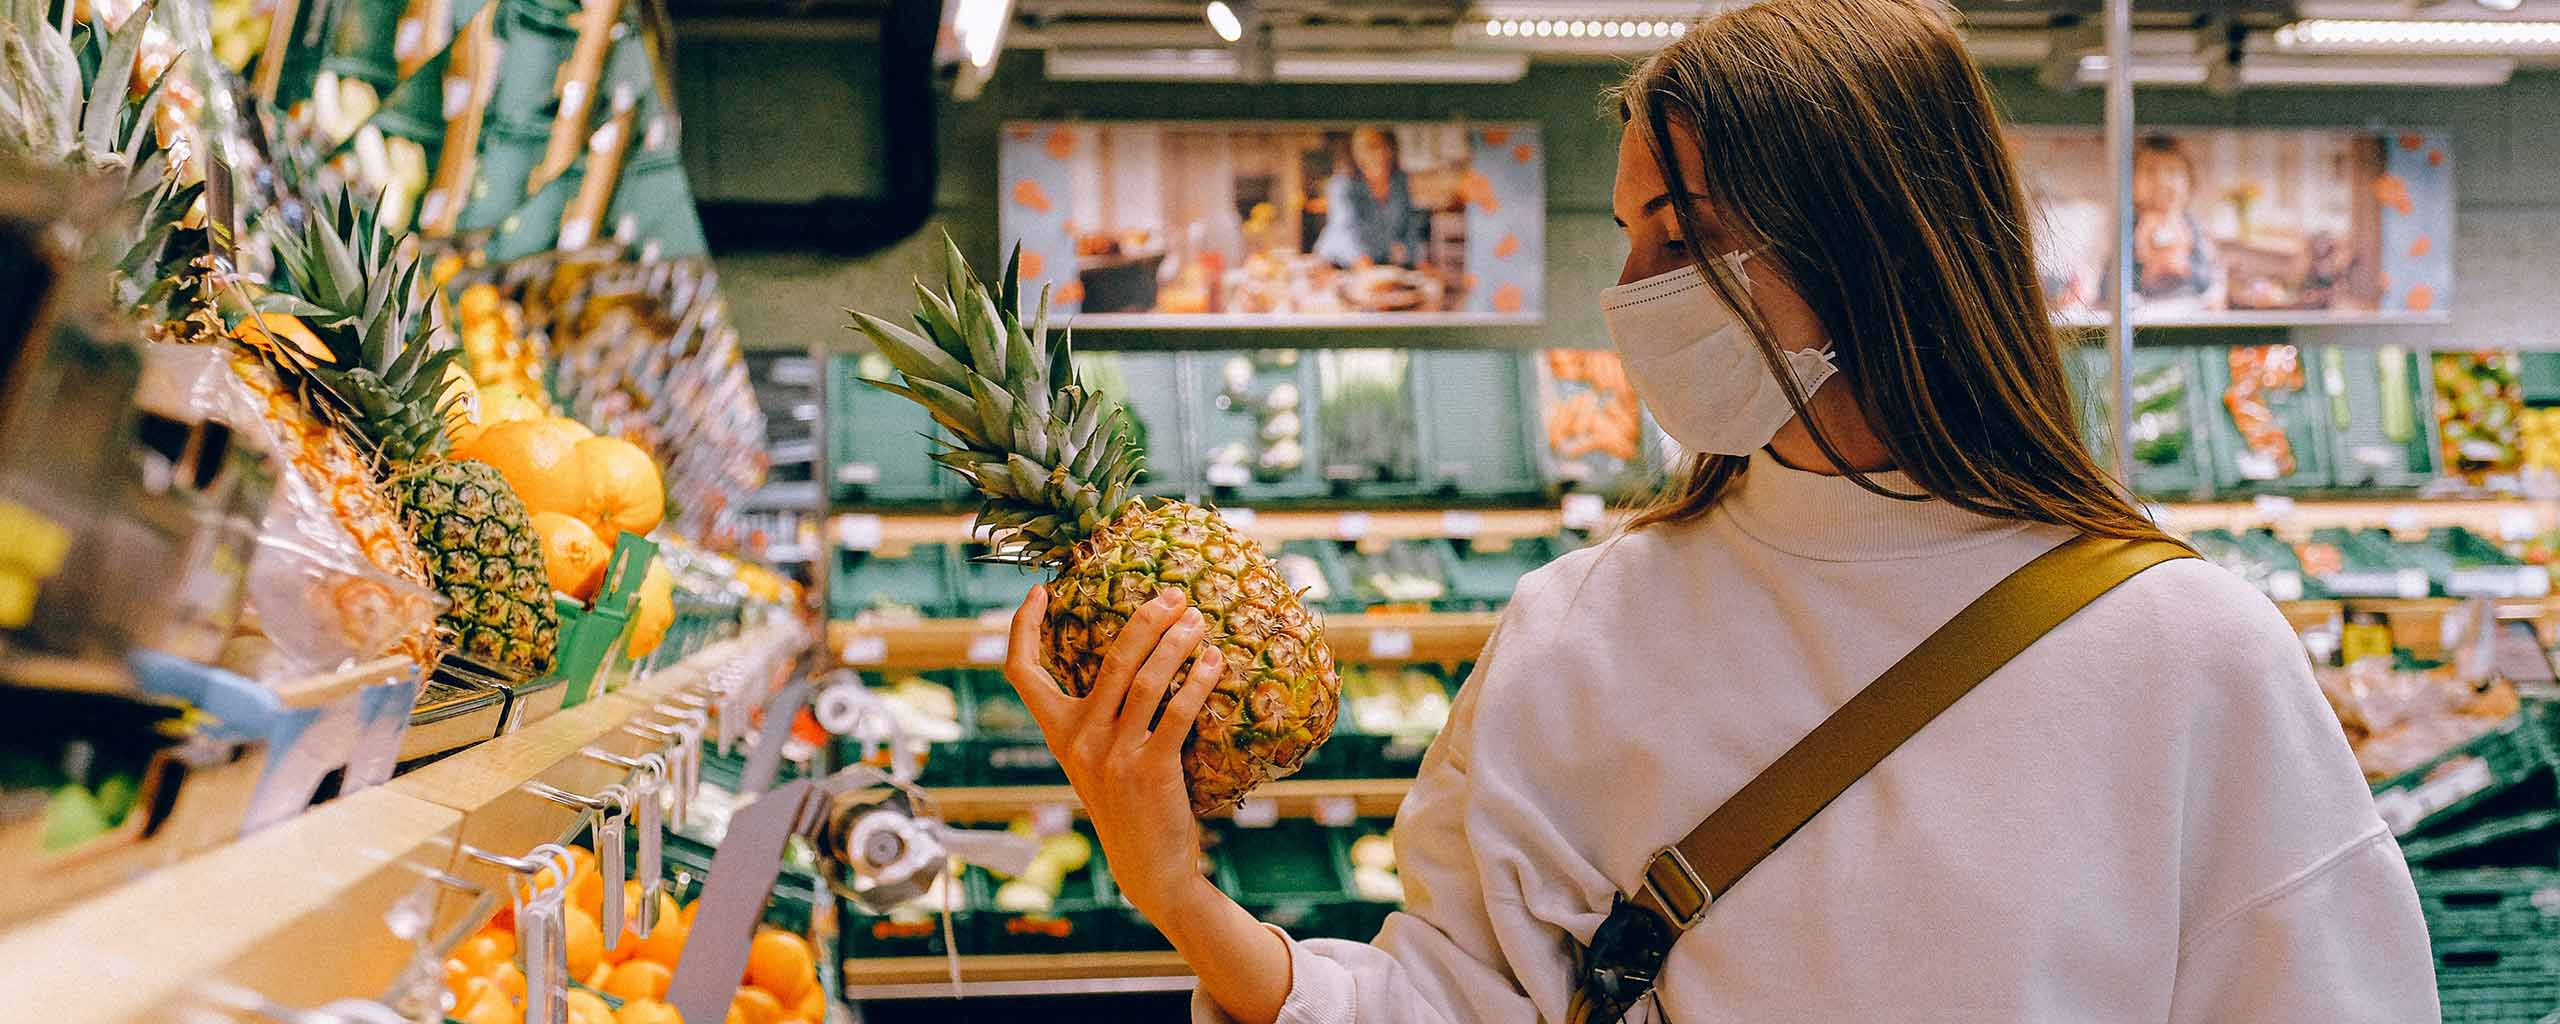 Woman shopping at the grocery store wearing a facemask and holding a pineapple